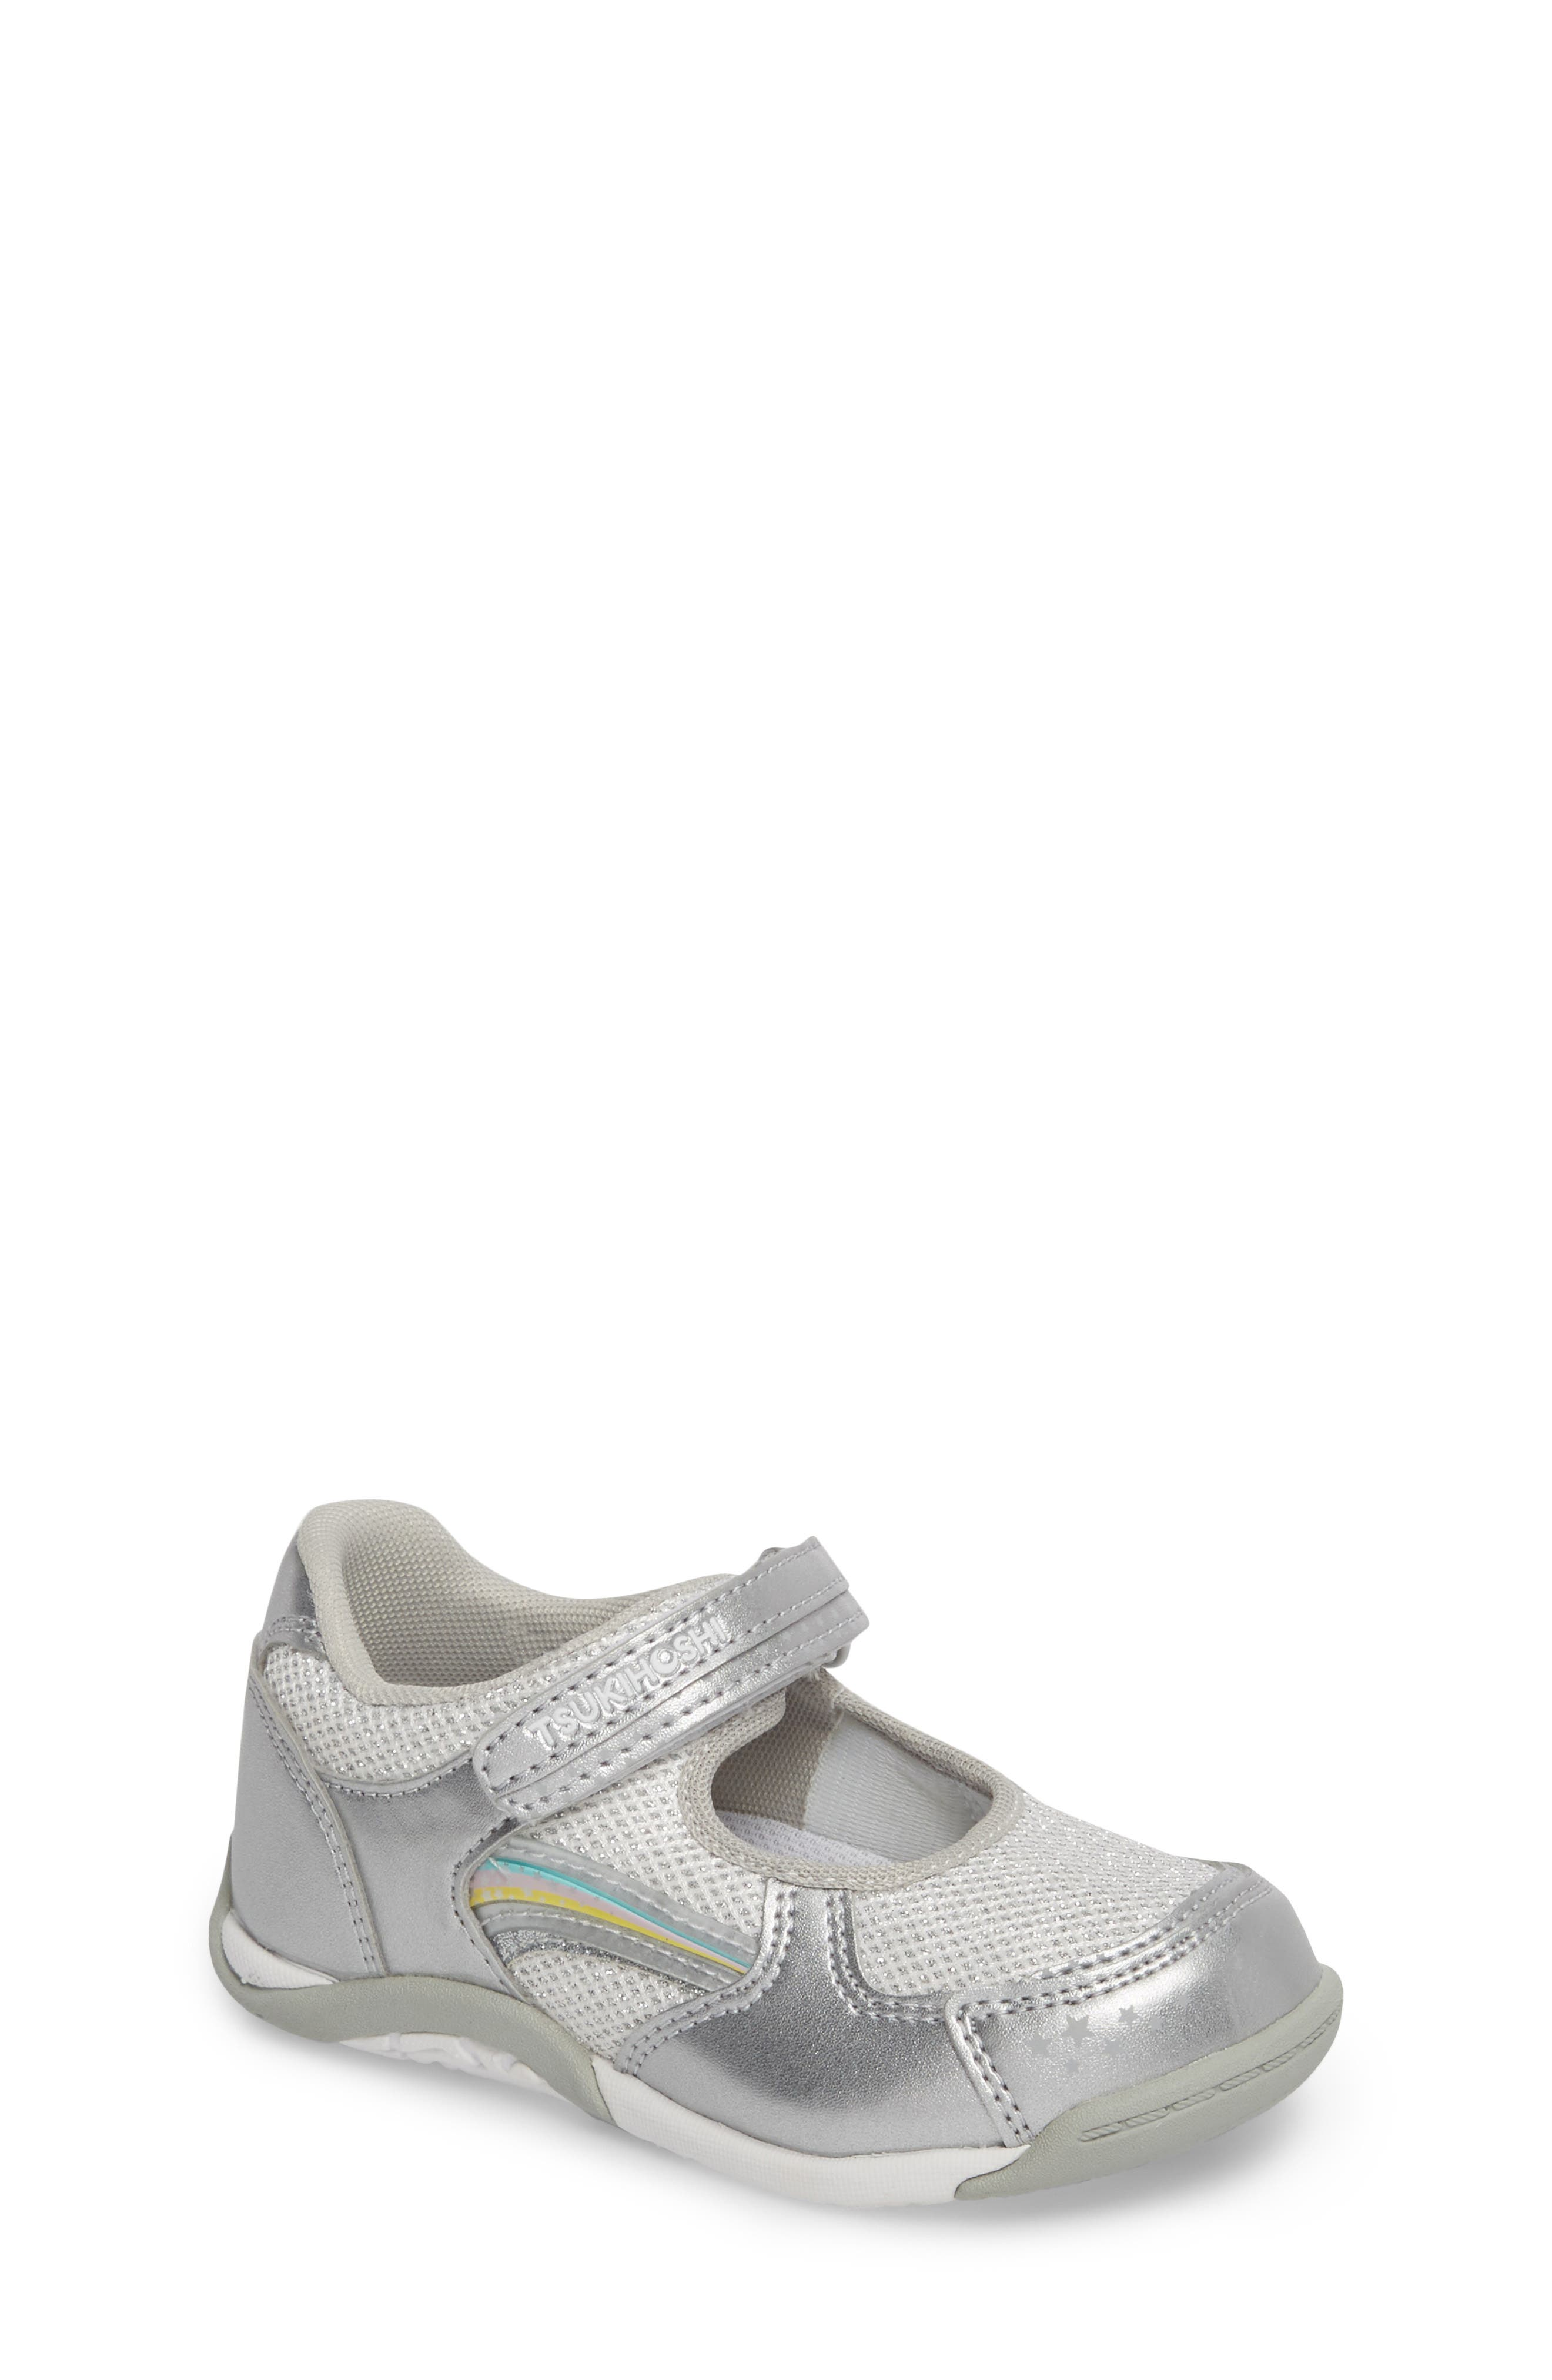 TSUKIHOSHI Twinkle Washable Sneaker, Main, color, SILVER/ SILVER